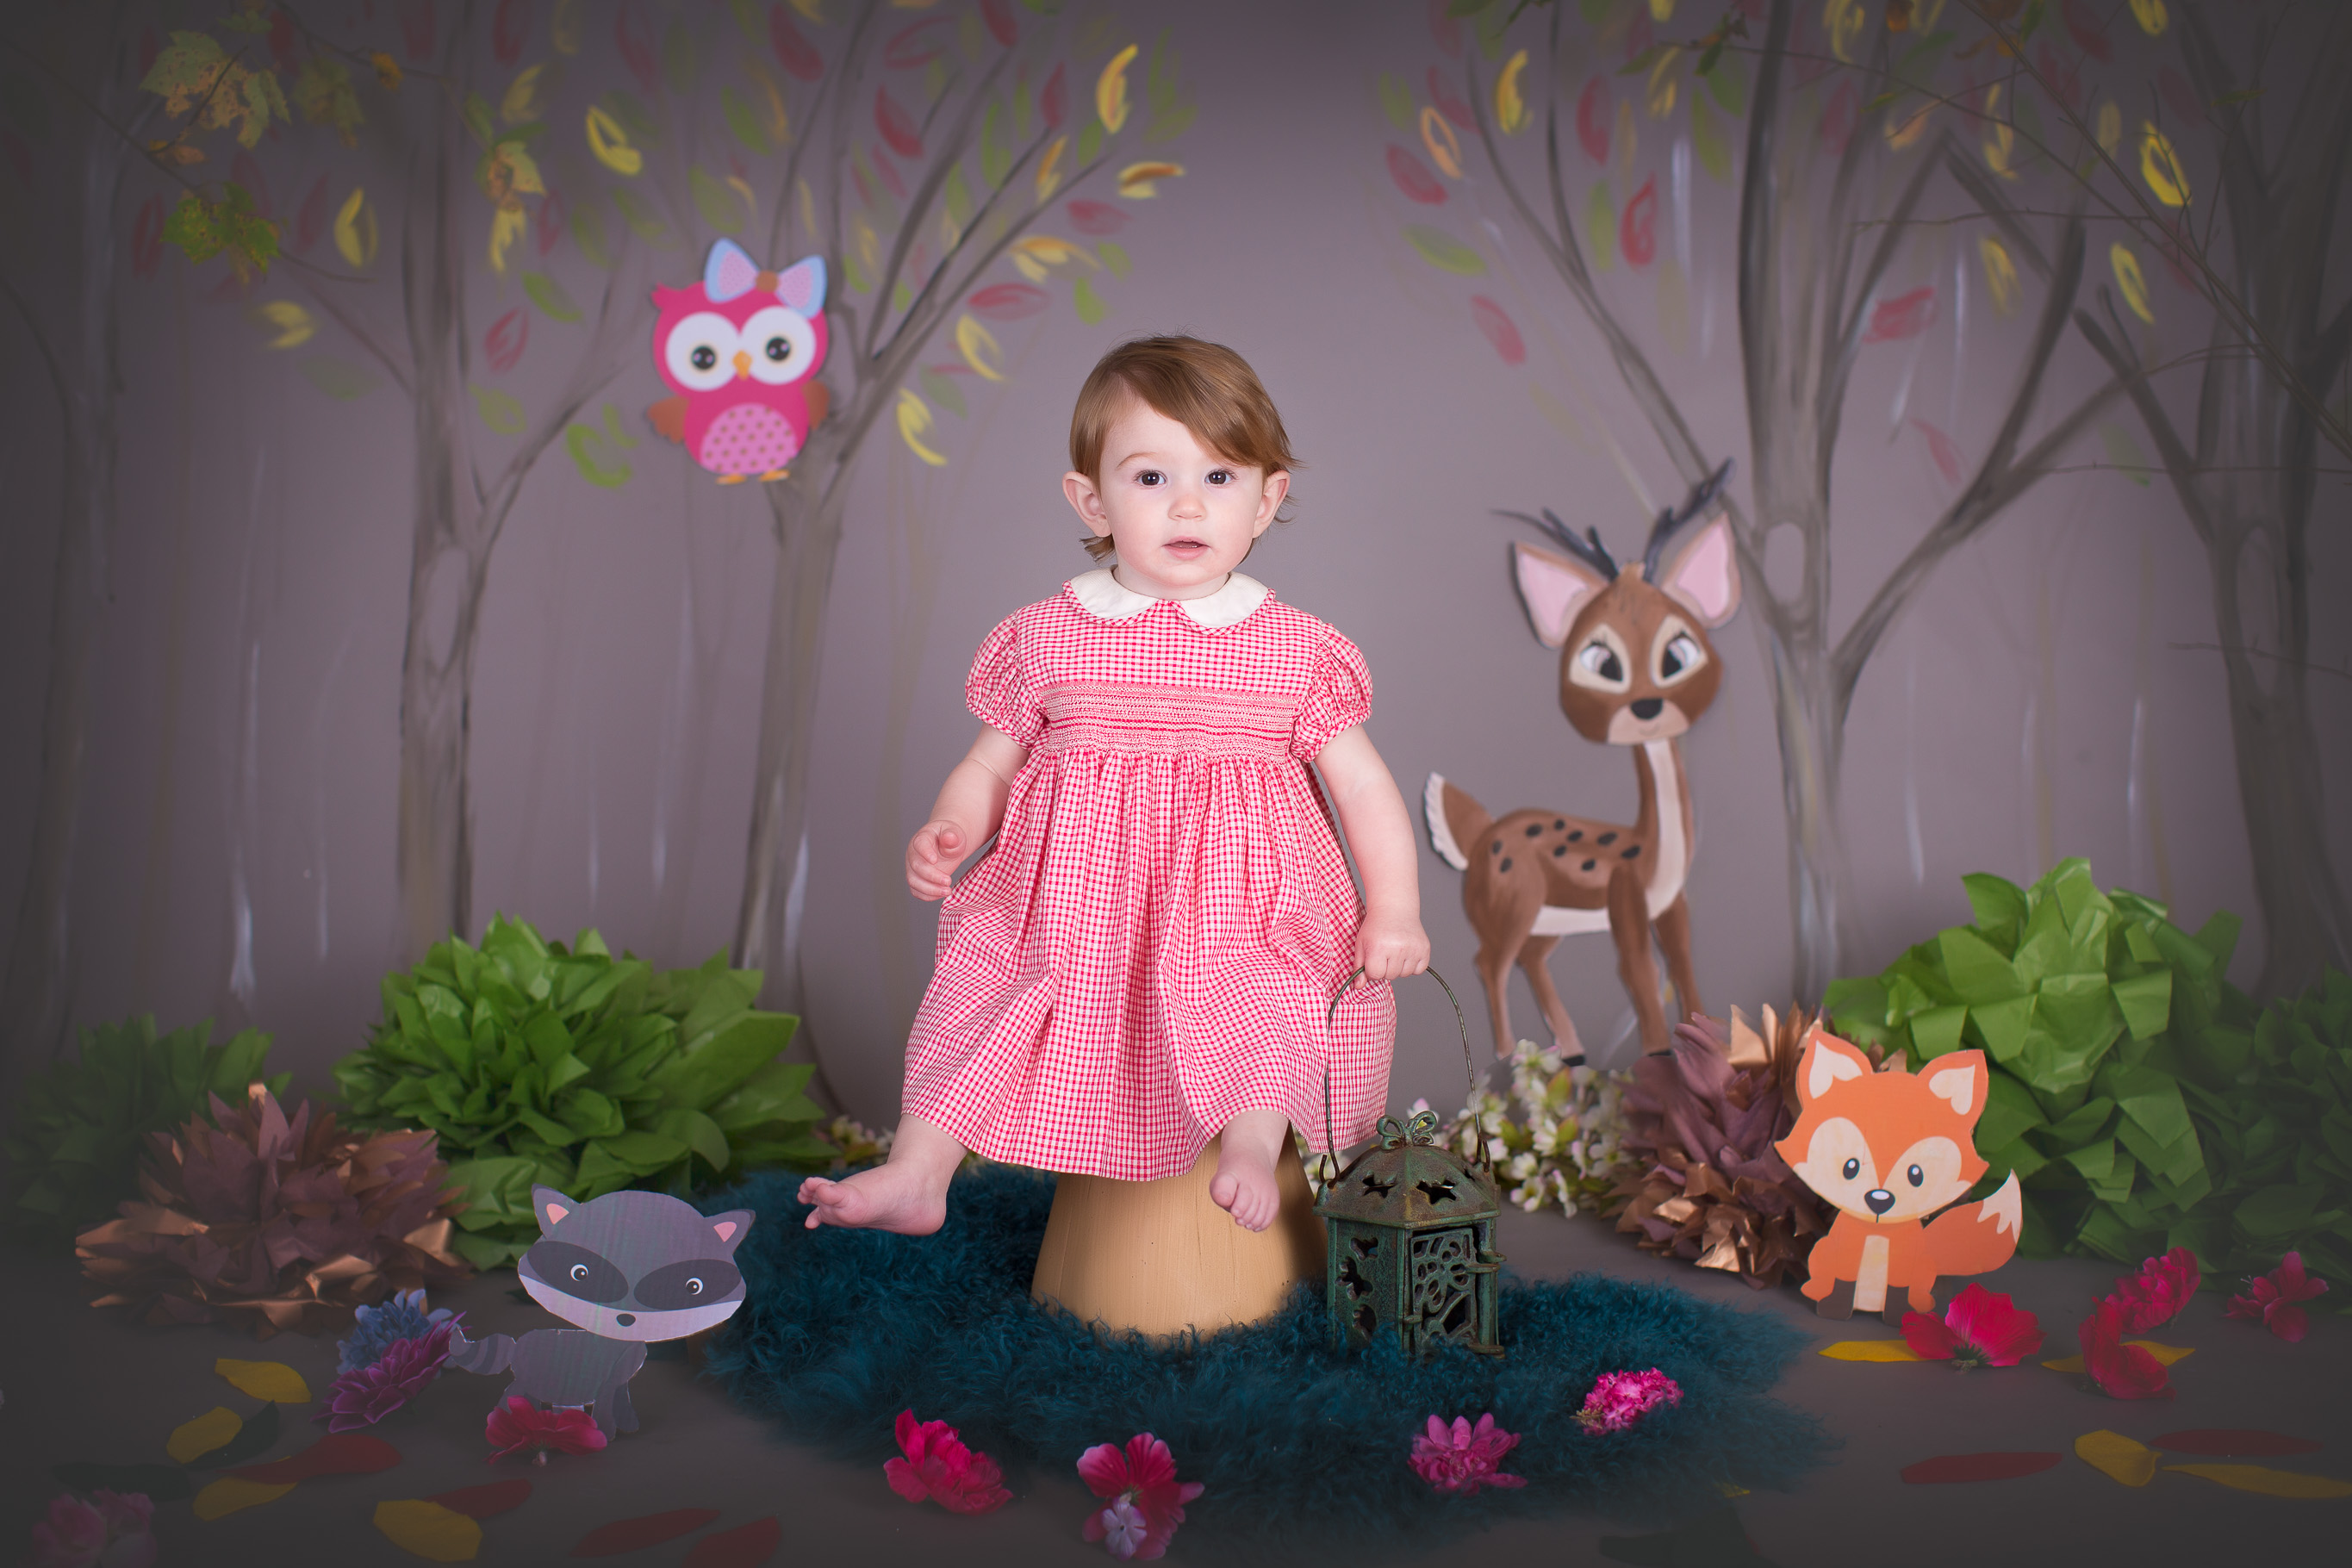 Image of little gild sitting on stool surrounded by painted woodland scene